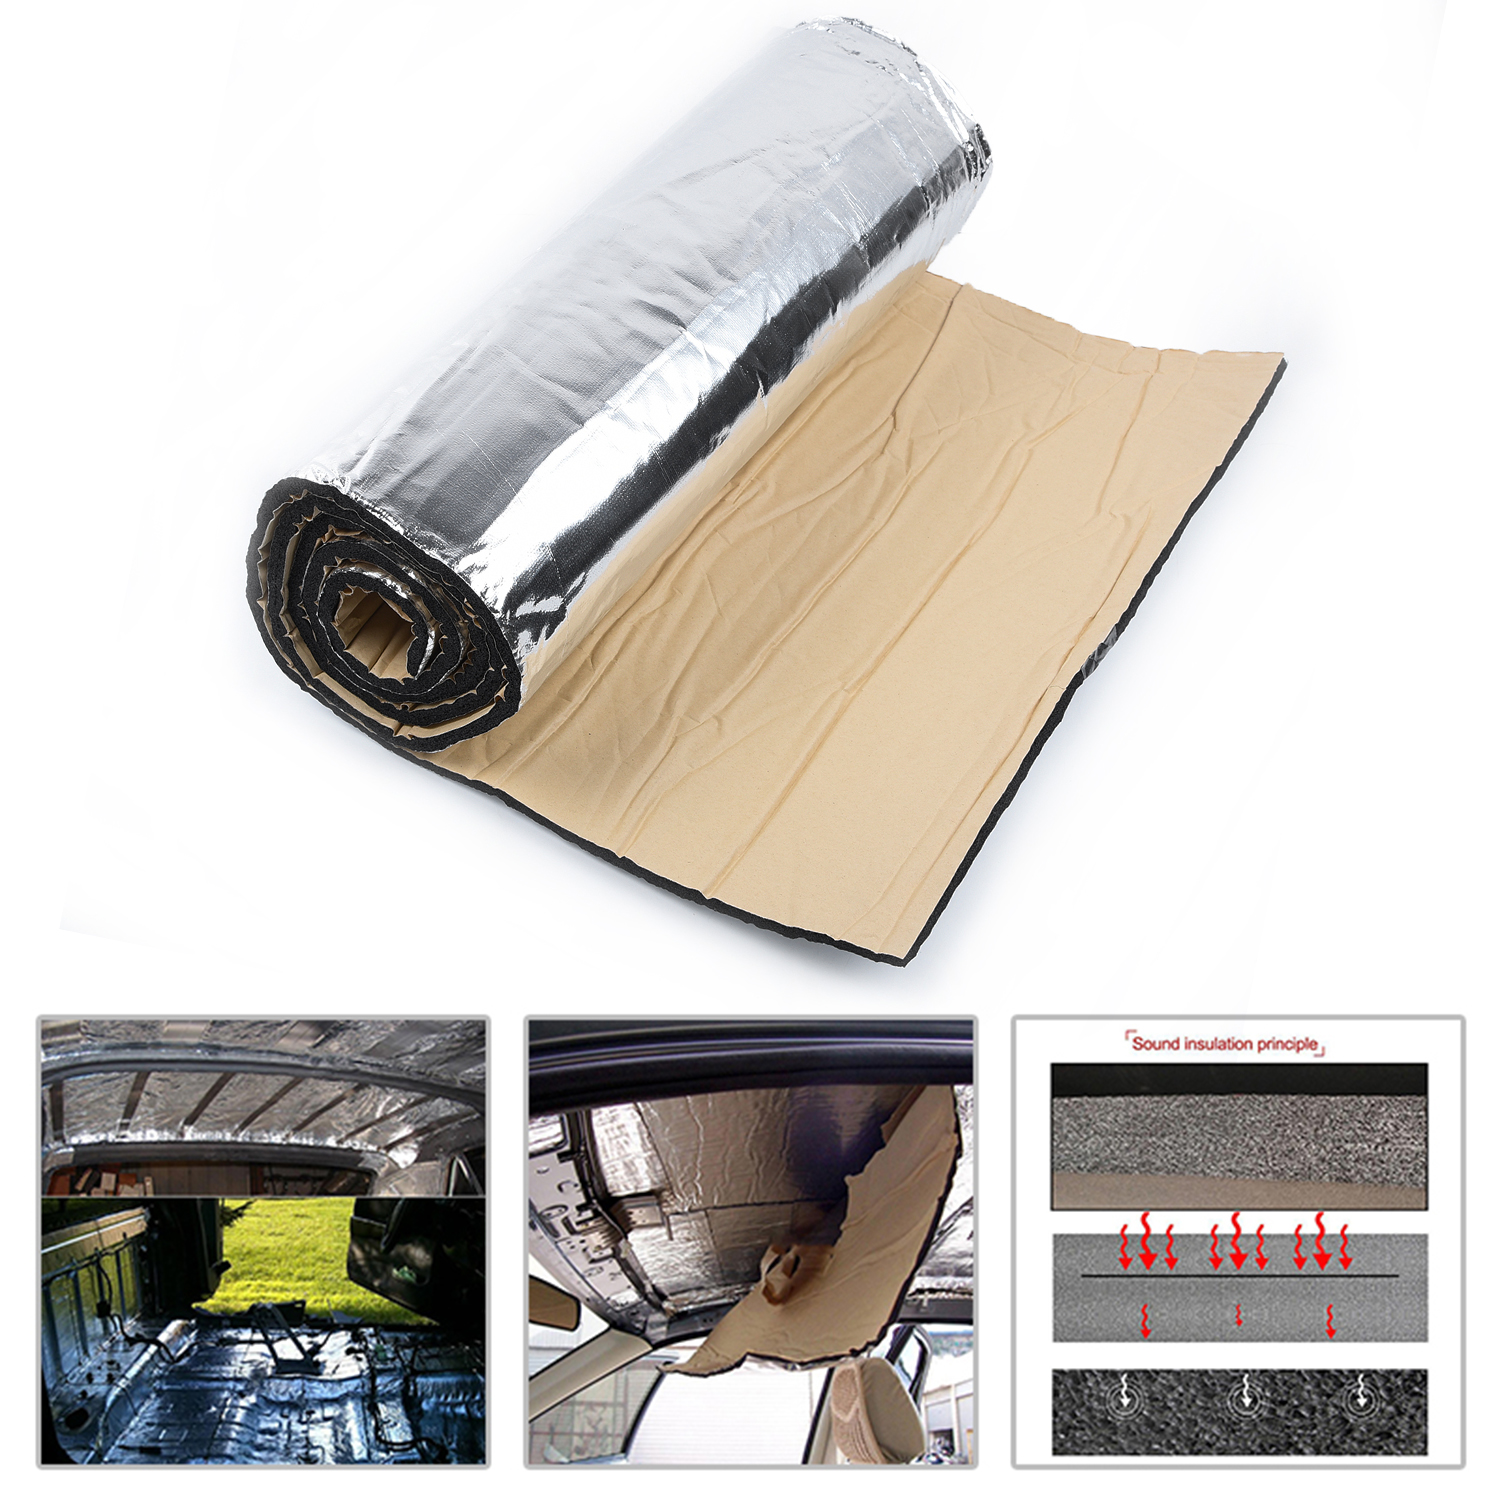 1x Car Sound Proofing Deadening Heat Shield Insulation Mat Closed Cell Foam Pad